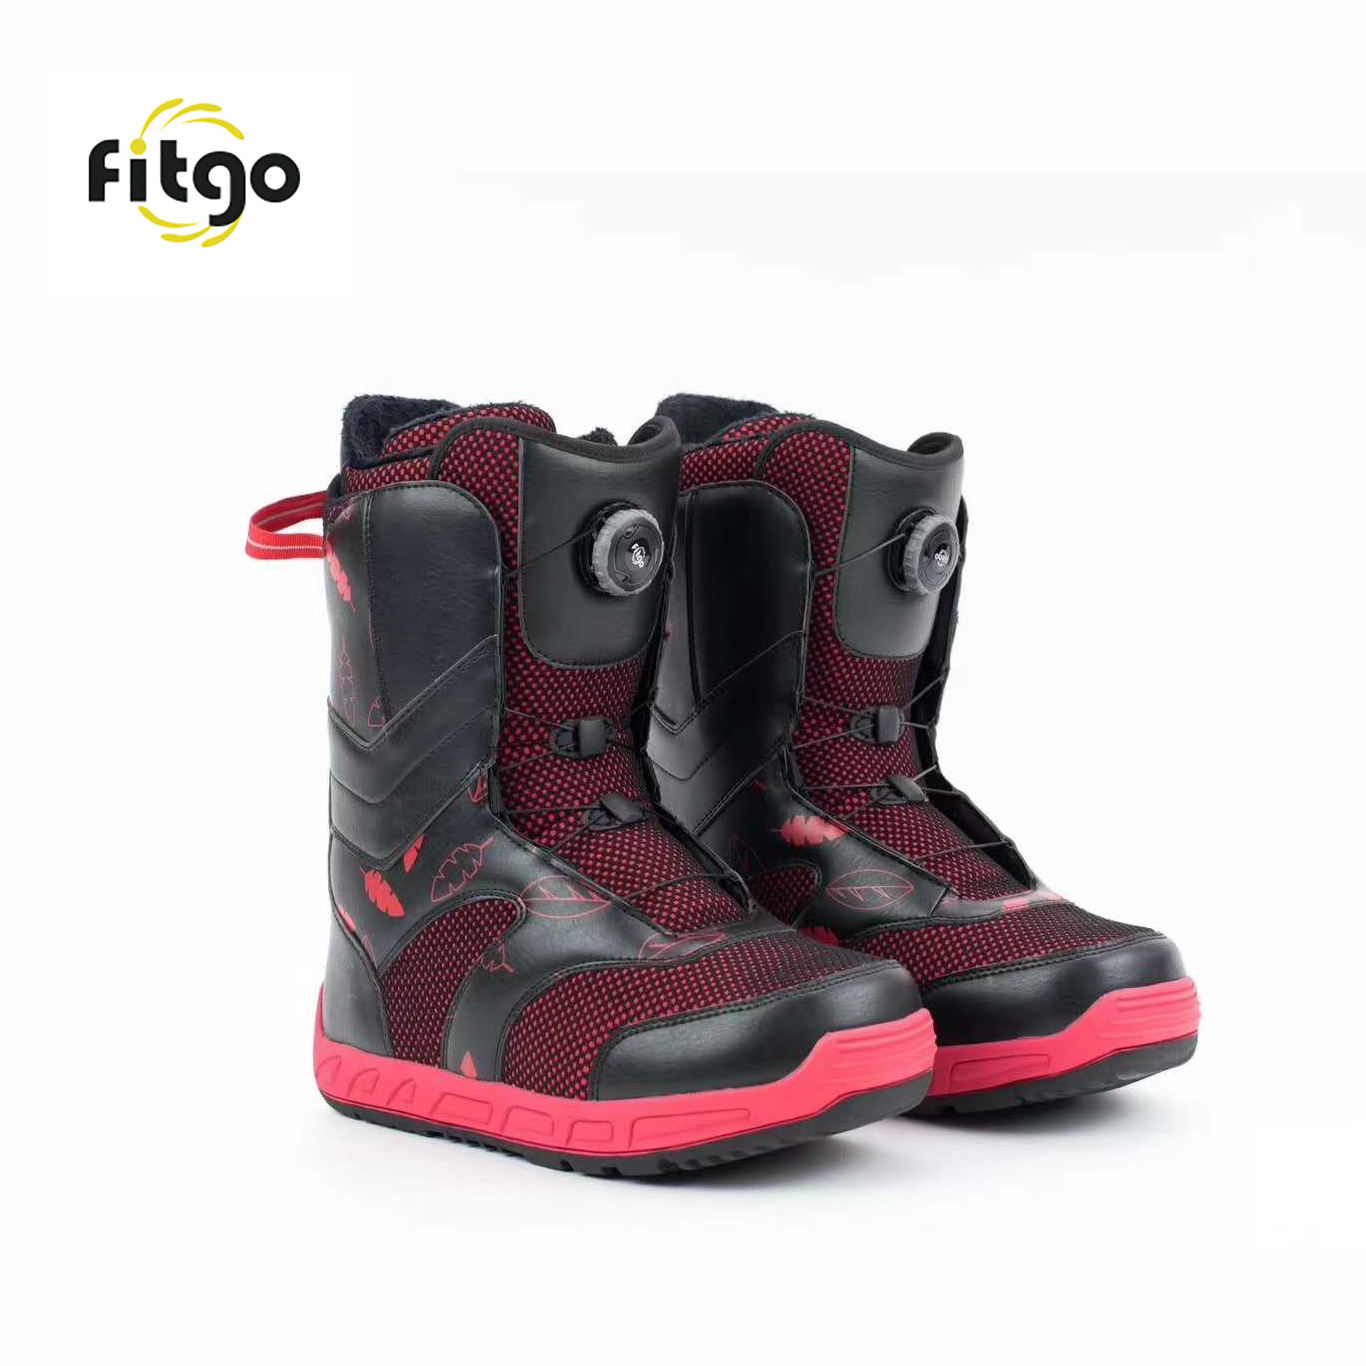 Fitgo Fasten System Lazy Round BOA Laces No Tie Shoelaces For Military&Ski Boots